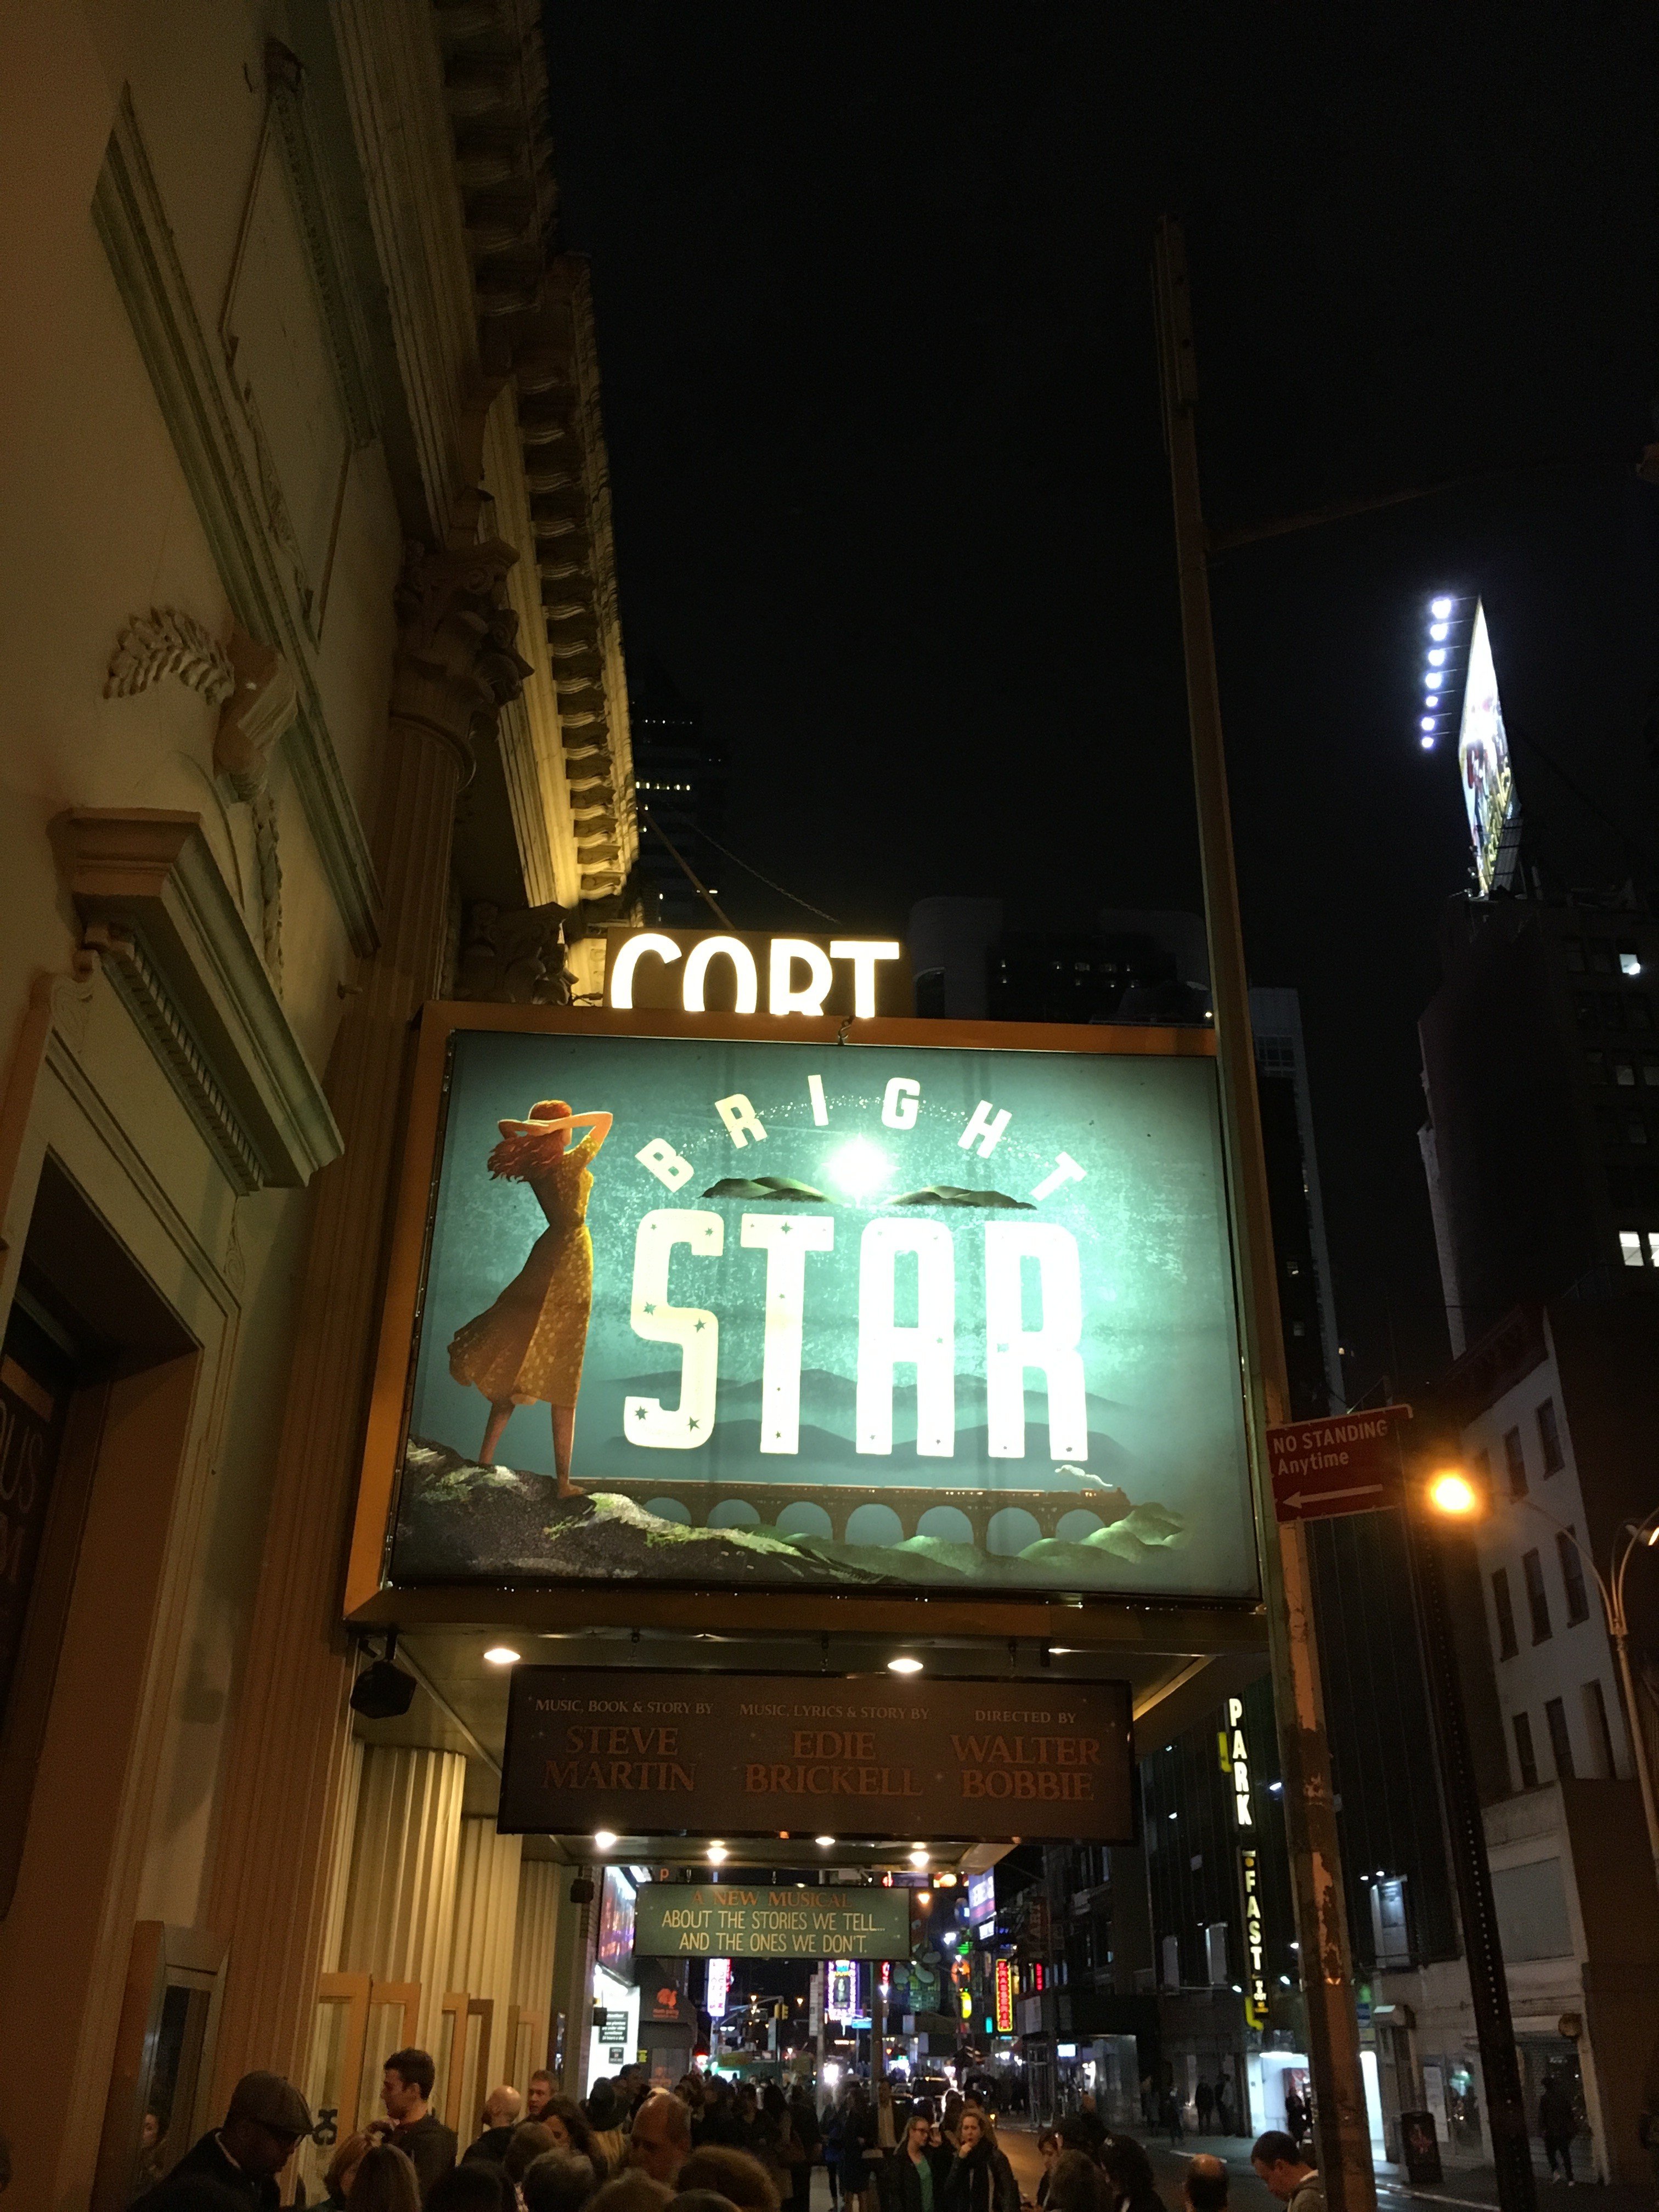 Bright Star Musical by Steve Martin and Edie Brickell